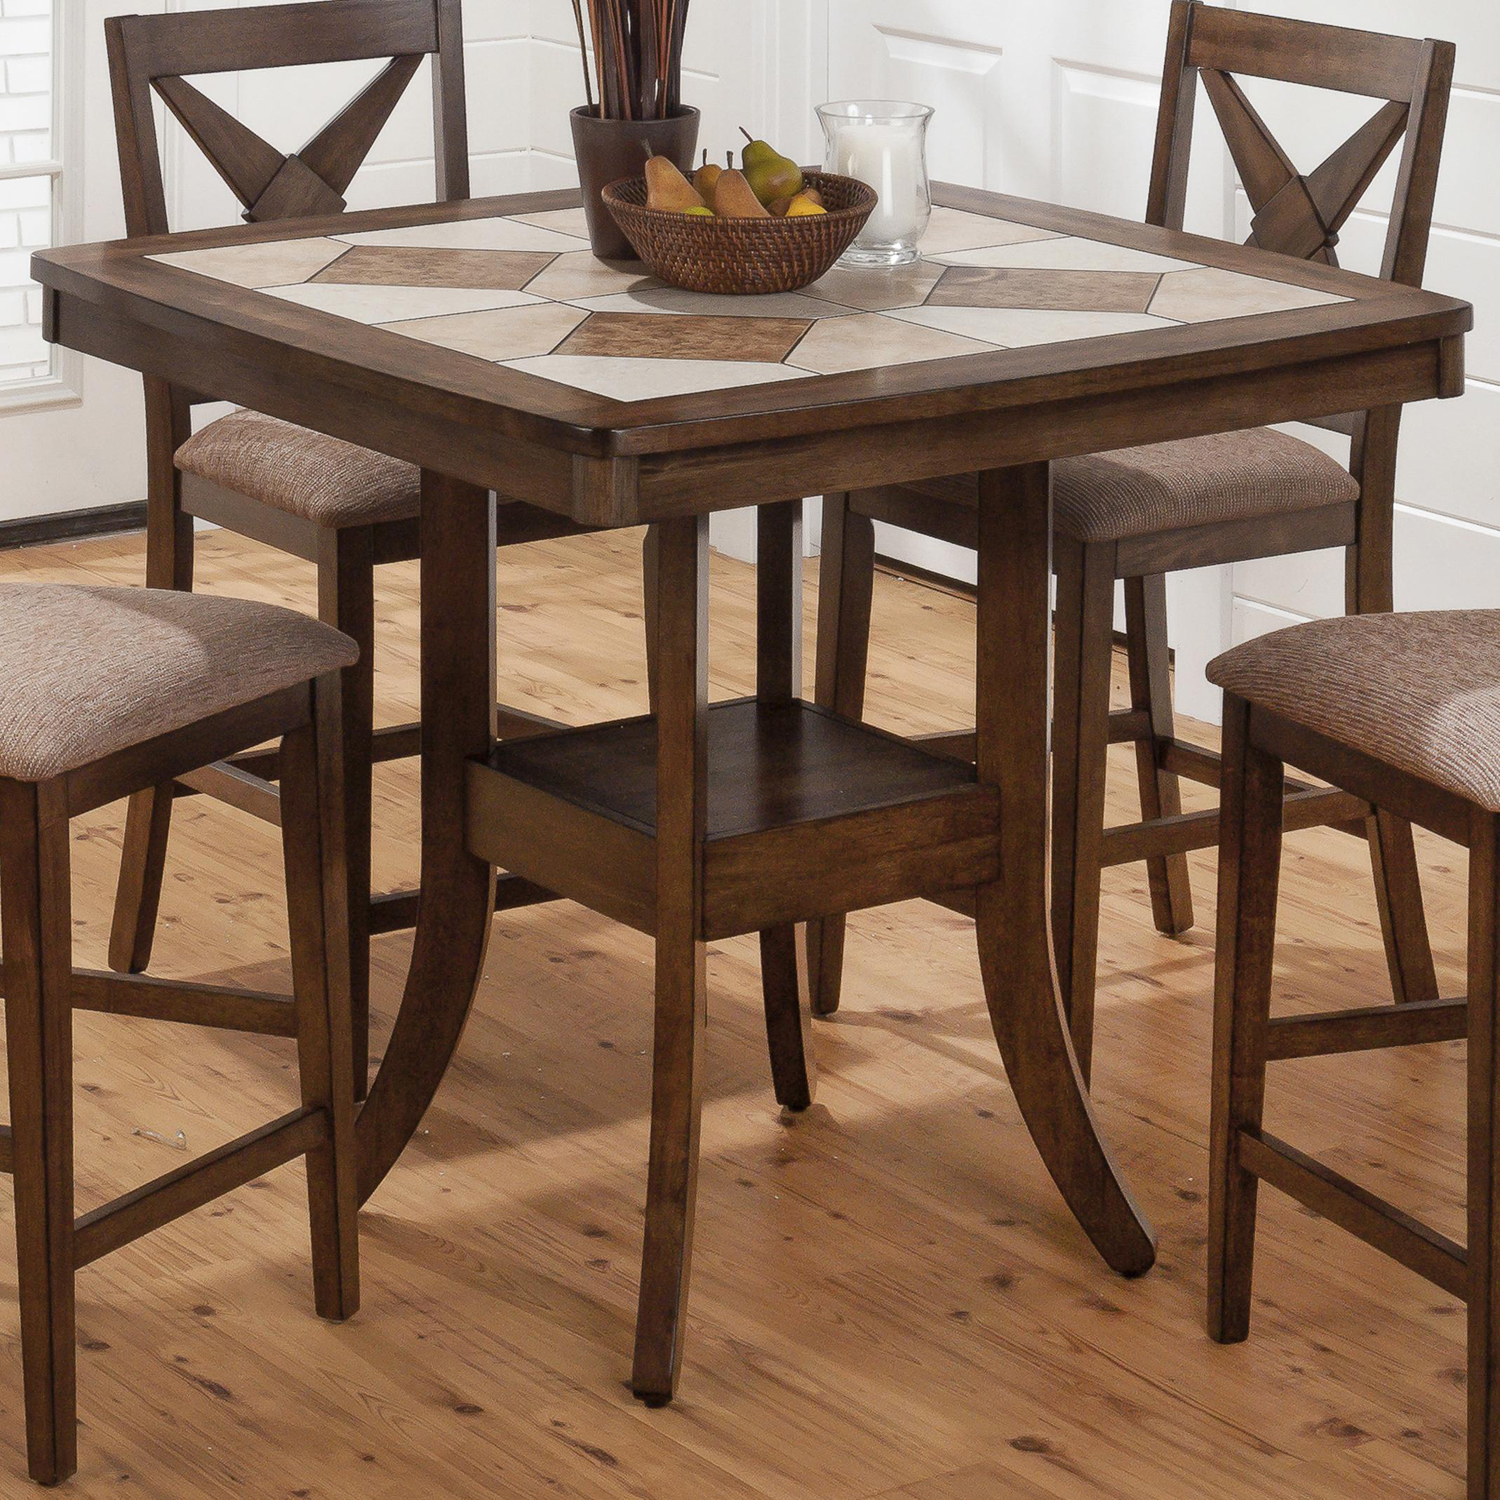 Tucson 40quot Counter Height Table Ceramic Tile Brown  : 794 40 from www.dcgstores.com size 1000 x 1000 jpeg 792kB